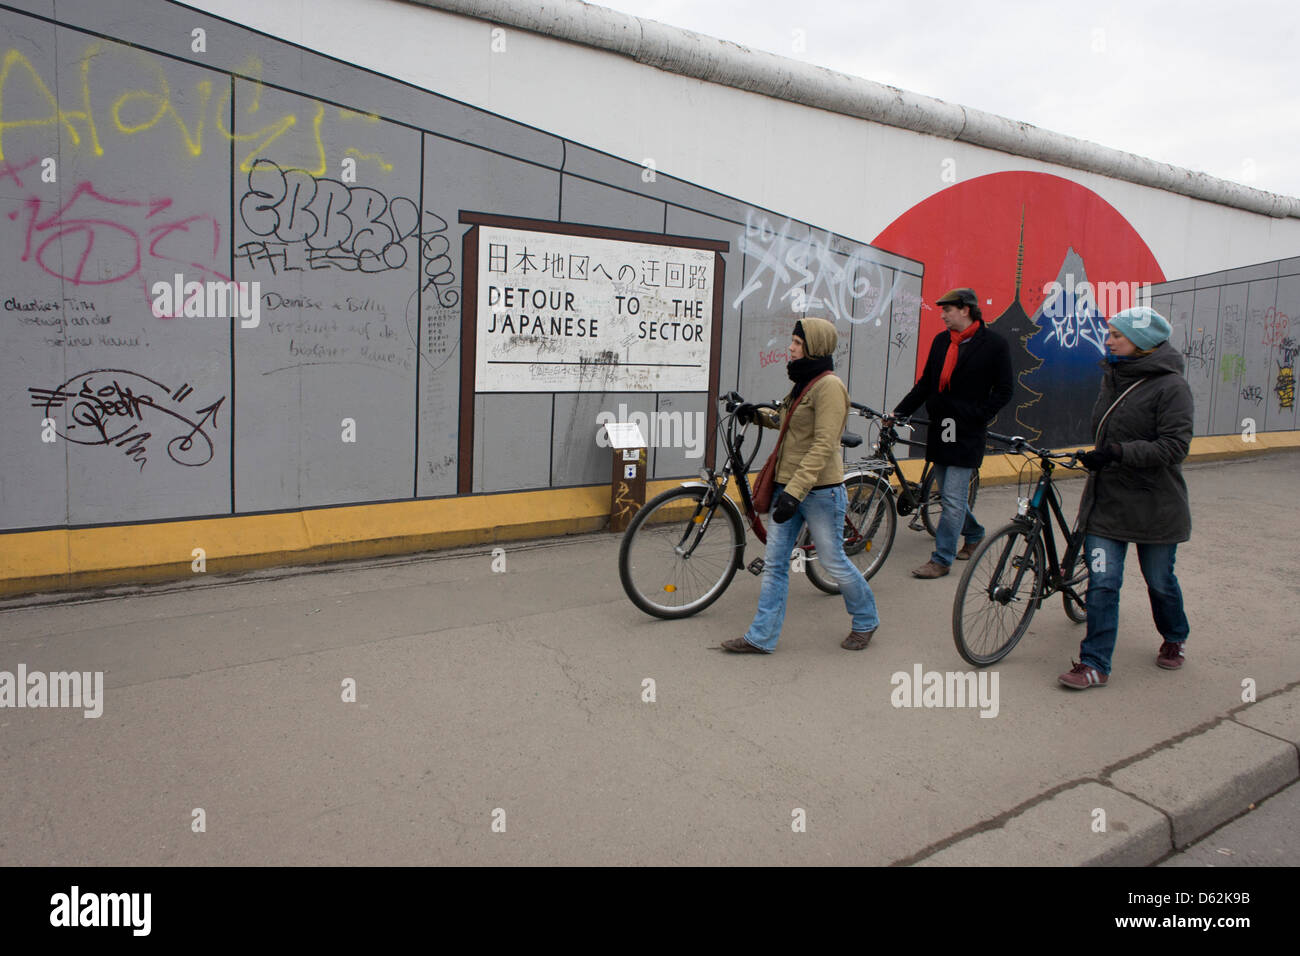 Visitors Enjoy The Art On The Old Berlin Wall At The East Side Gallery, The  Former Border Between Communist East And West Berlin During The Cold War.